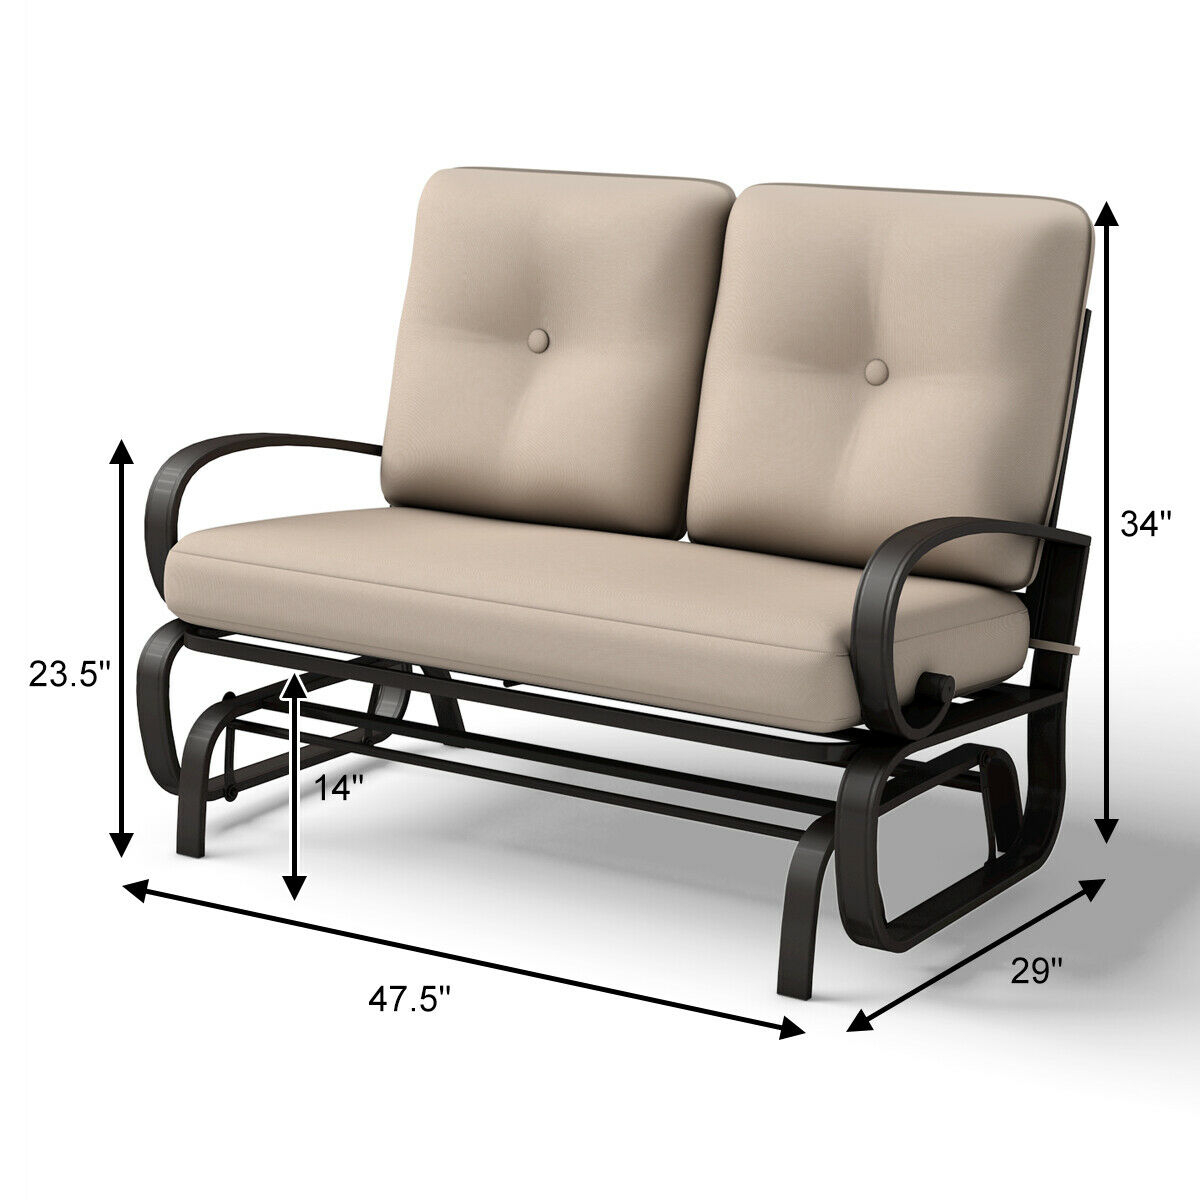 Glider Outdoor Patio Rocking Bench Loveseat Cushioned Seat Steel Frame  Furniture Intended For Outdoor Patio Swing Porch Rocker Glider Benches Loveseat Garden Seat Steel (View 5 of 25)